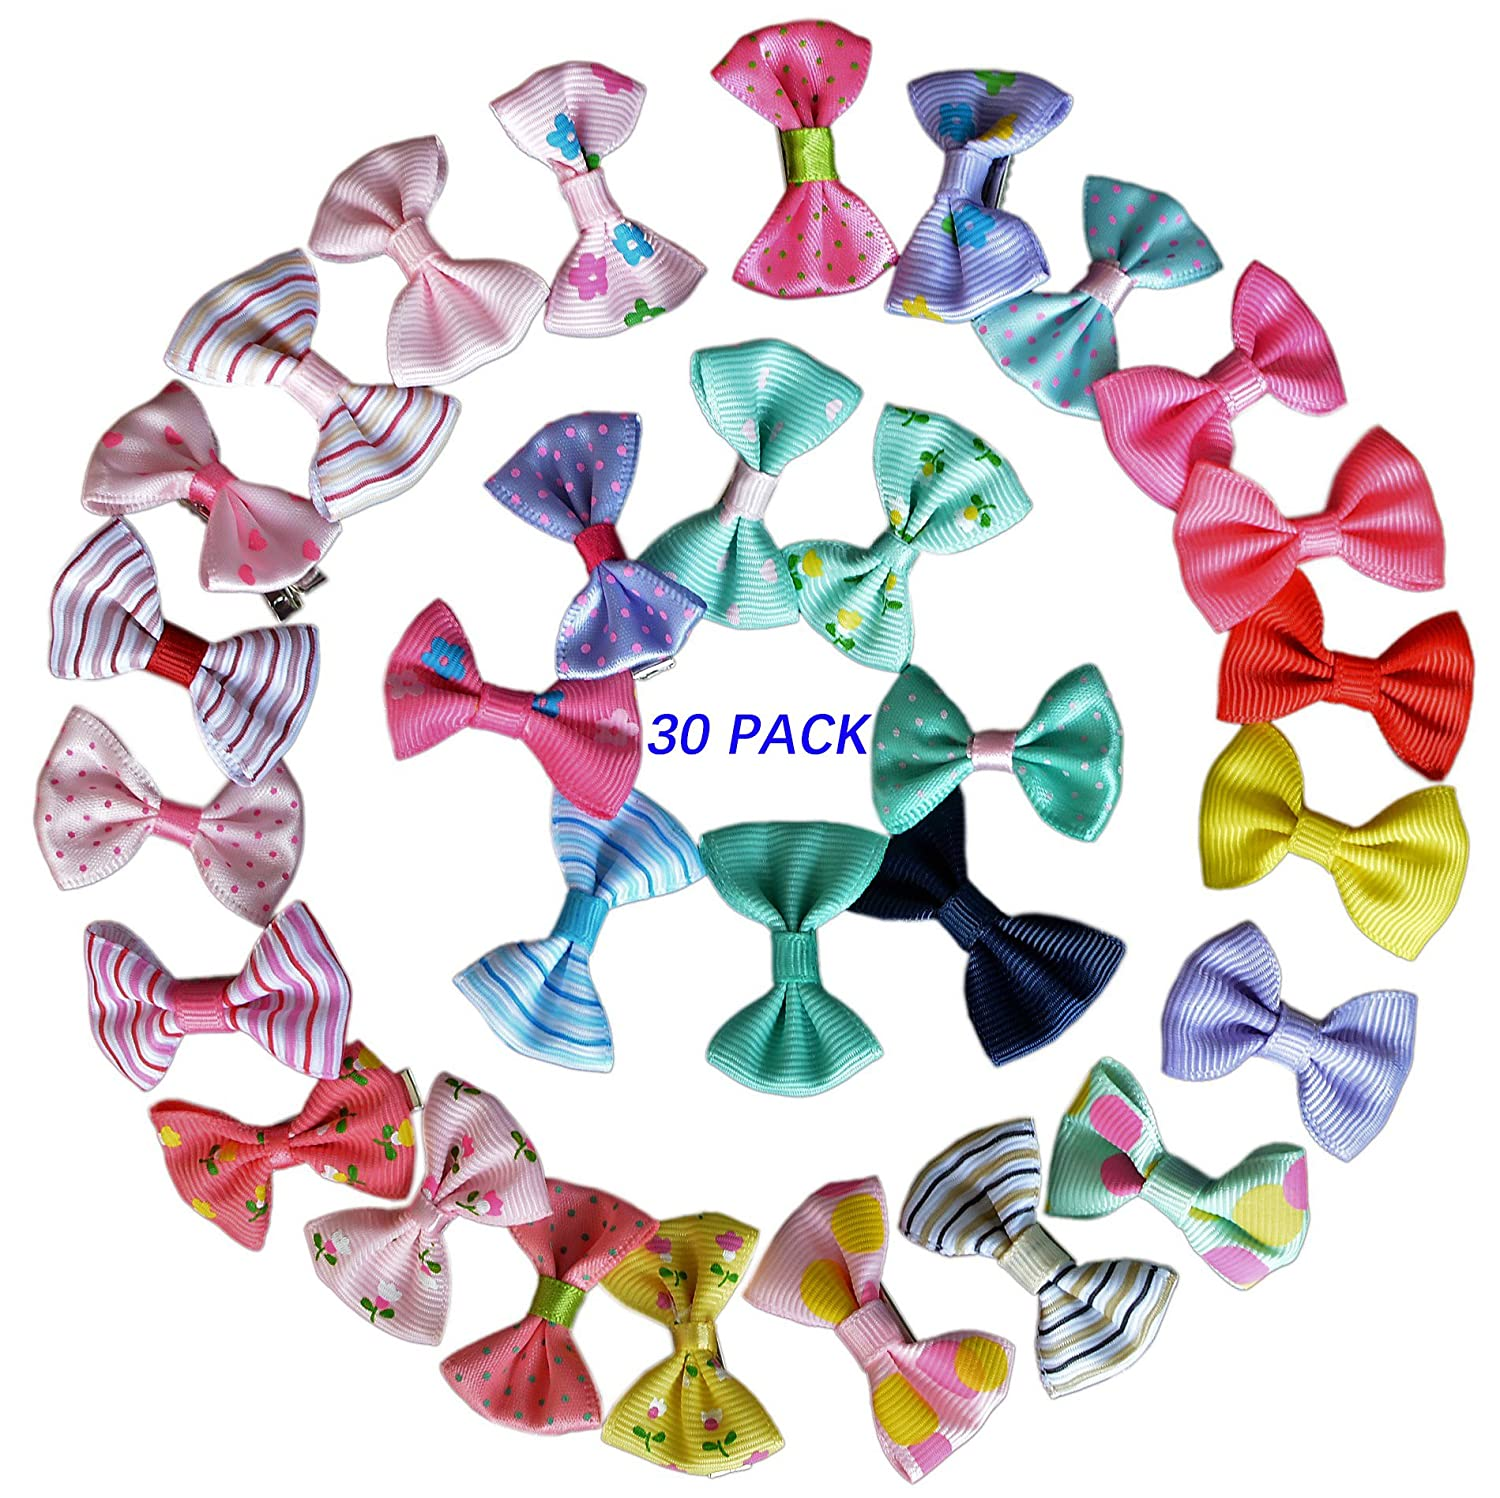 ZaoProteks ZP1201 30 Pcs Boutique Grosgrain Ribbon Hair Bow, Hair Clip for Girls ZhaoPin